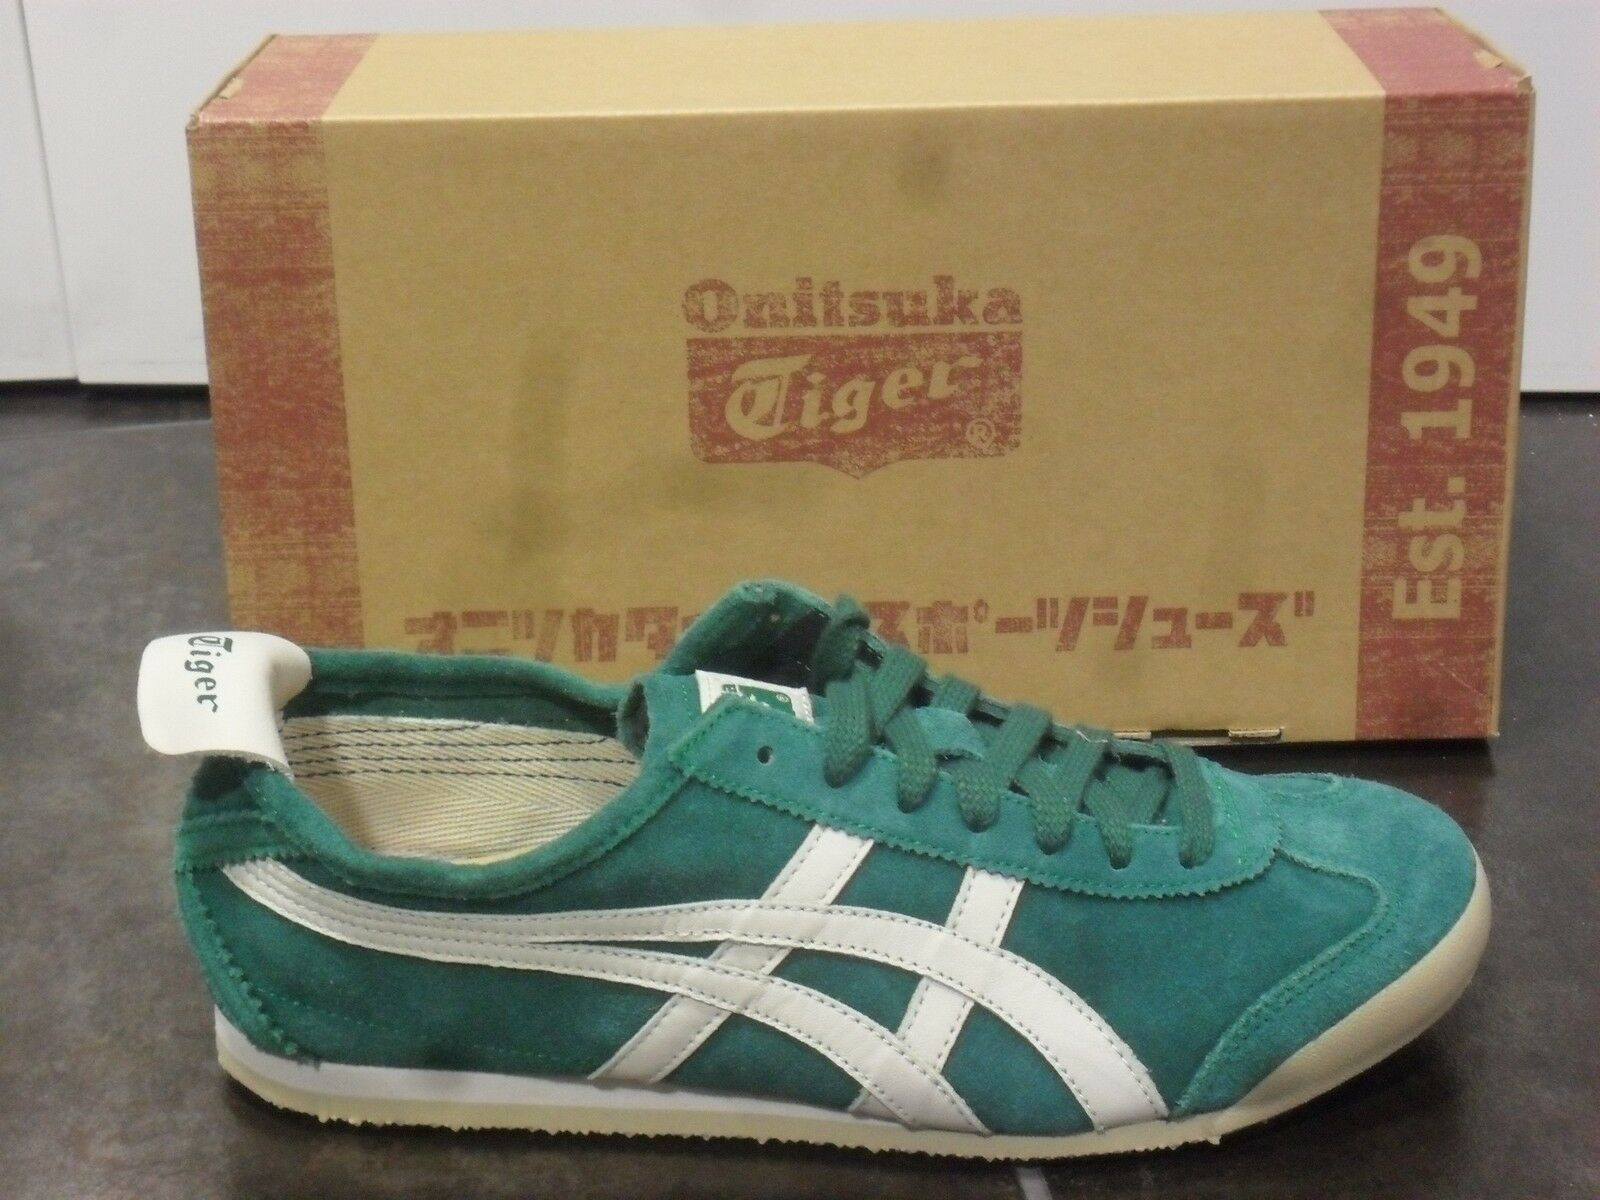 ASICS ONITSUKA TIGER MEXICO MEXICO SHOES VINTAGE VINTAGE VINTAGE SUEDE SNEAKERS SHOES 8005 0f569f